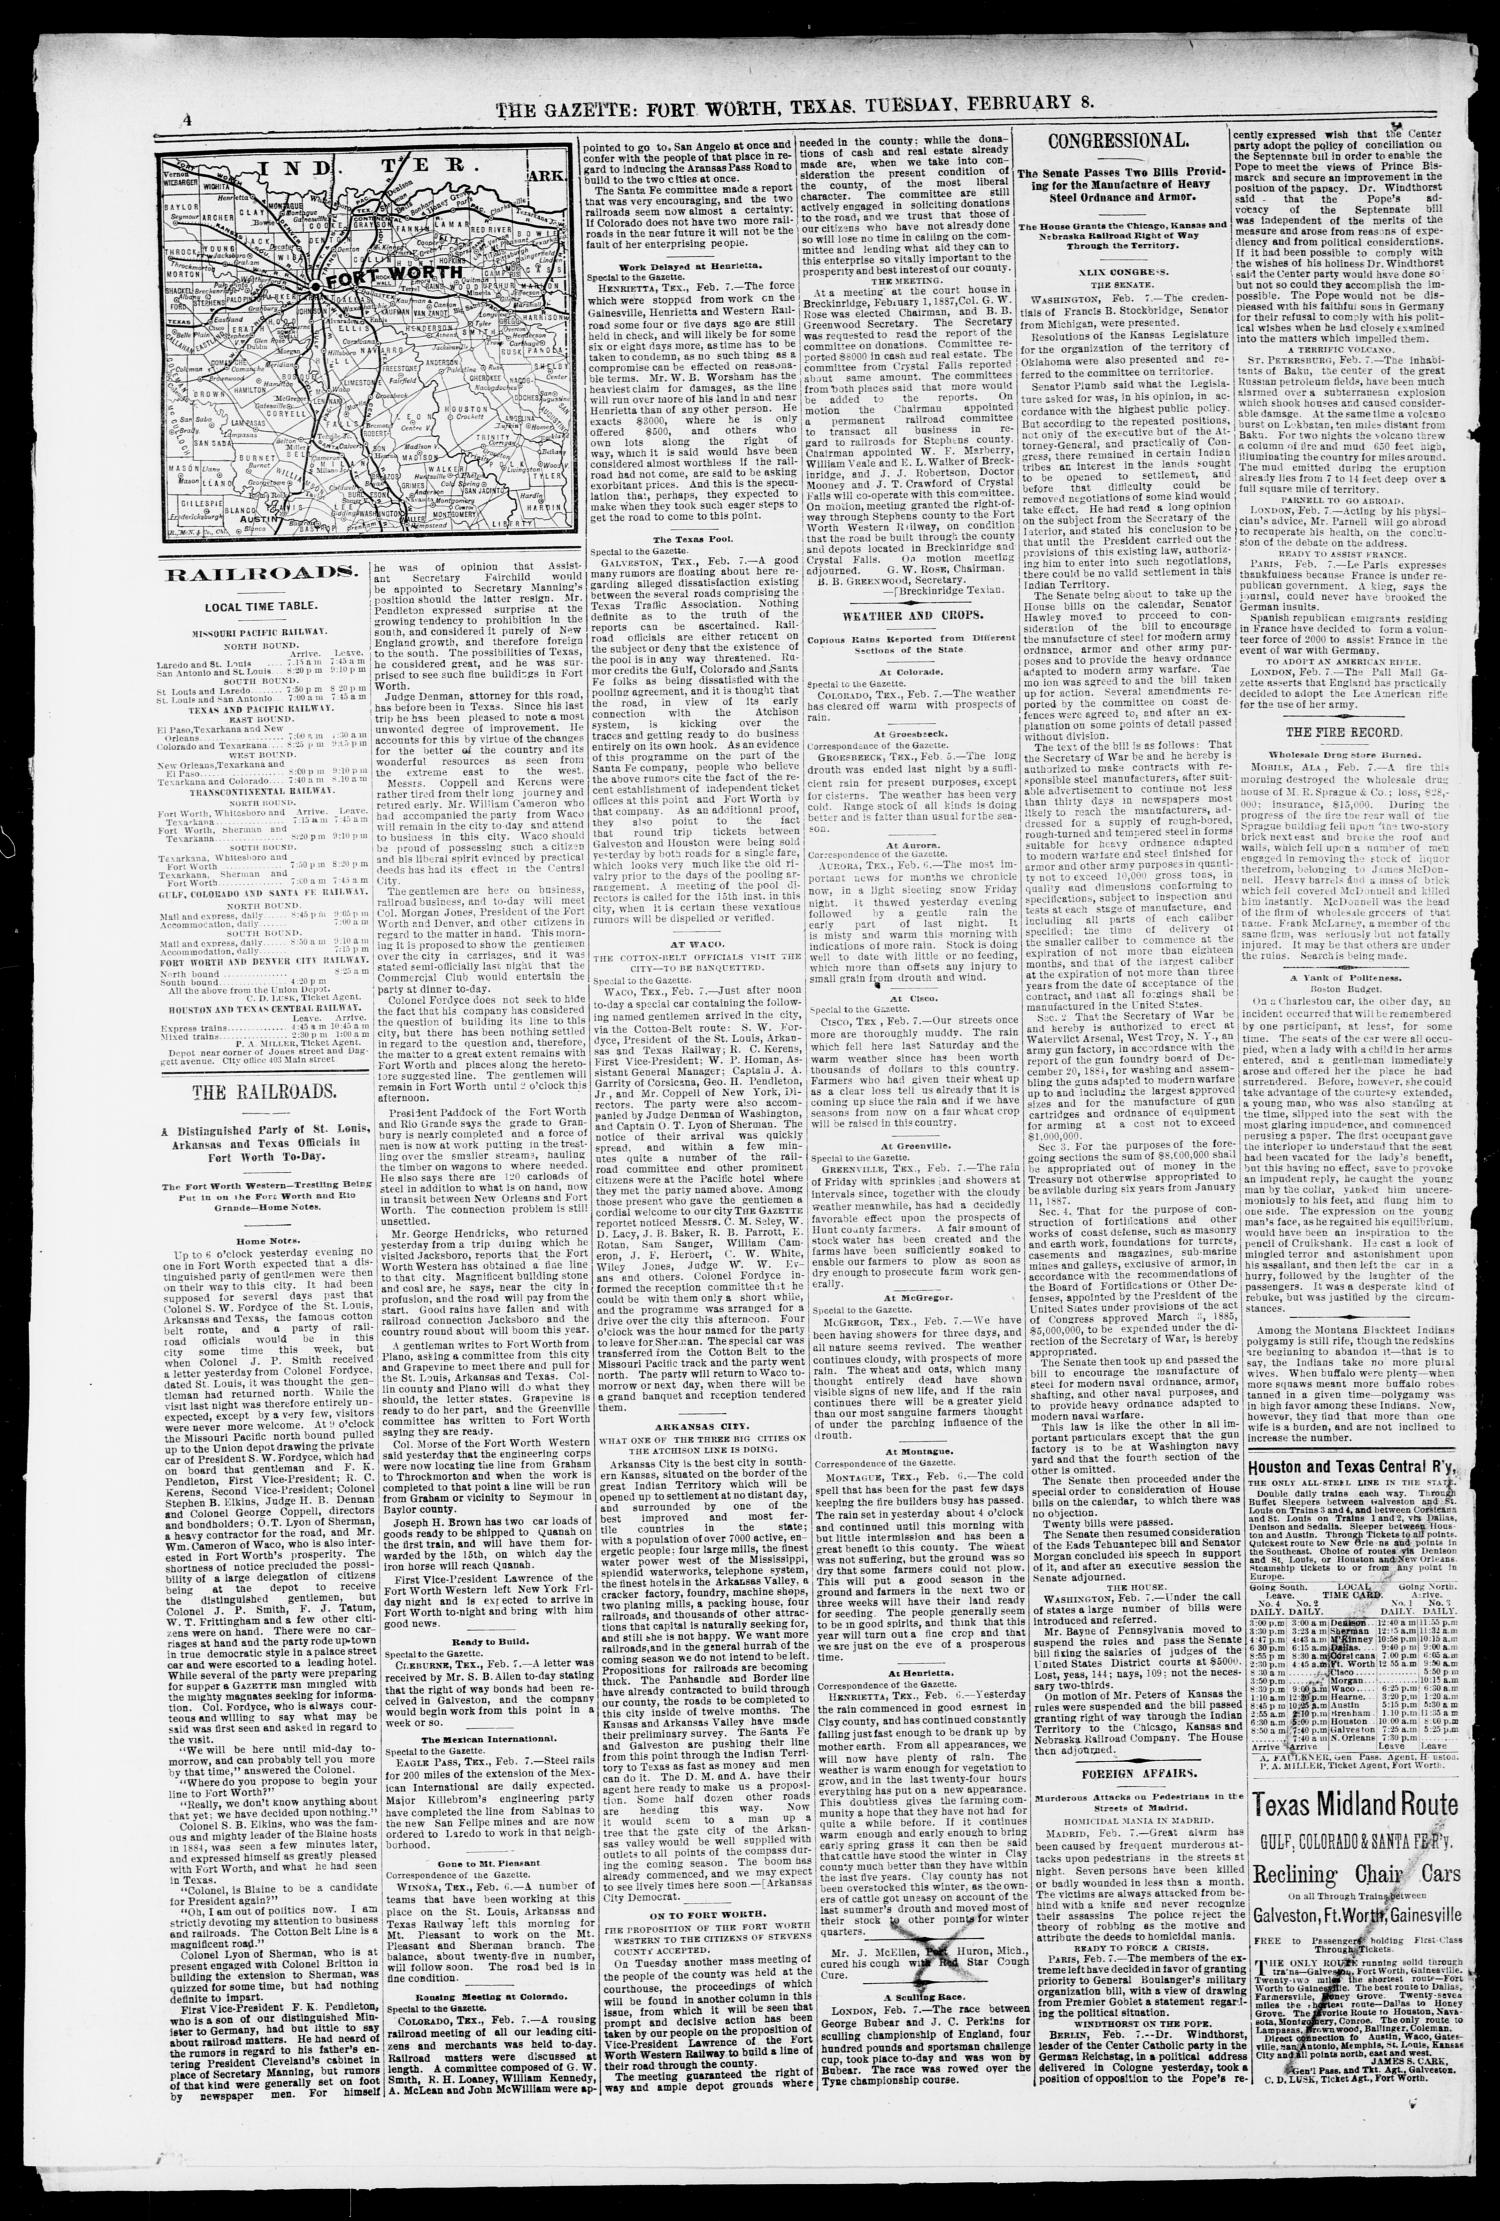 Fort Worth Daily Gazette. (Fort Worth, Tex.), Vol. 12, No. 193, Ed. 1, Tuesday, February 8, 1887                                                                                                      [Sequence #]: 4 of 8